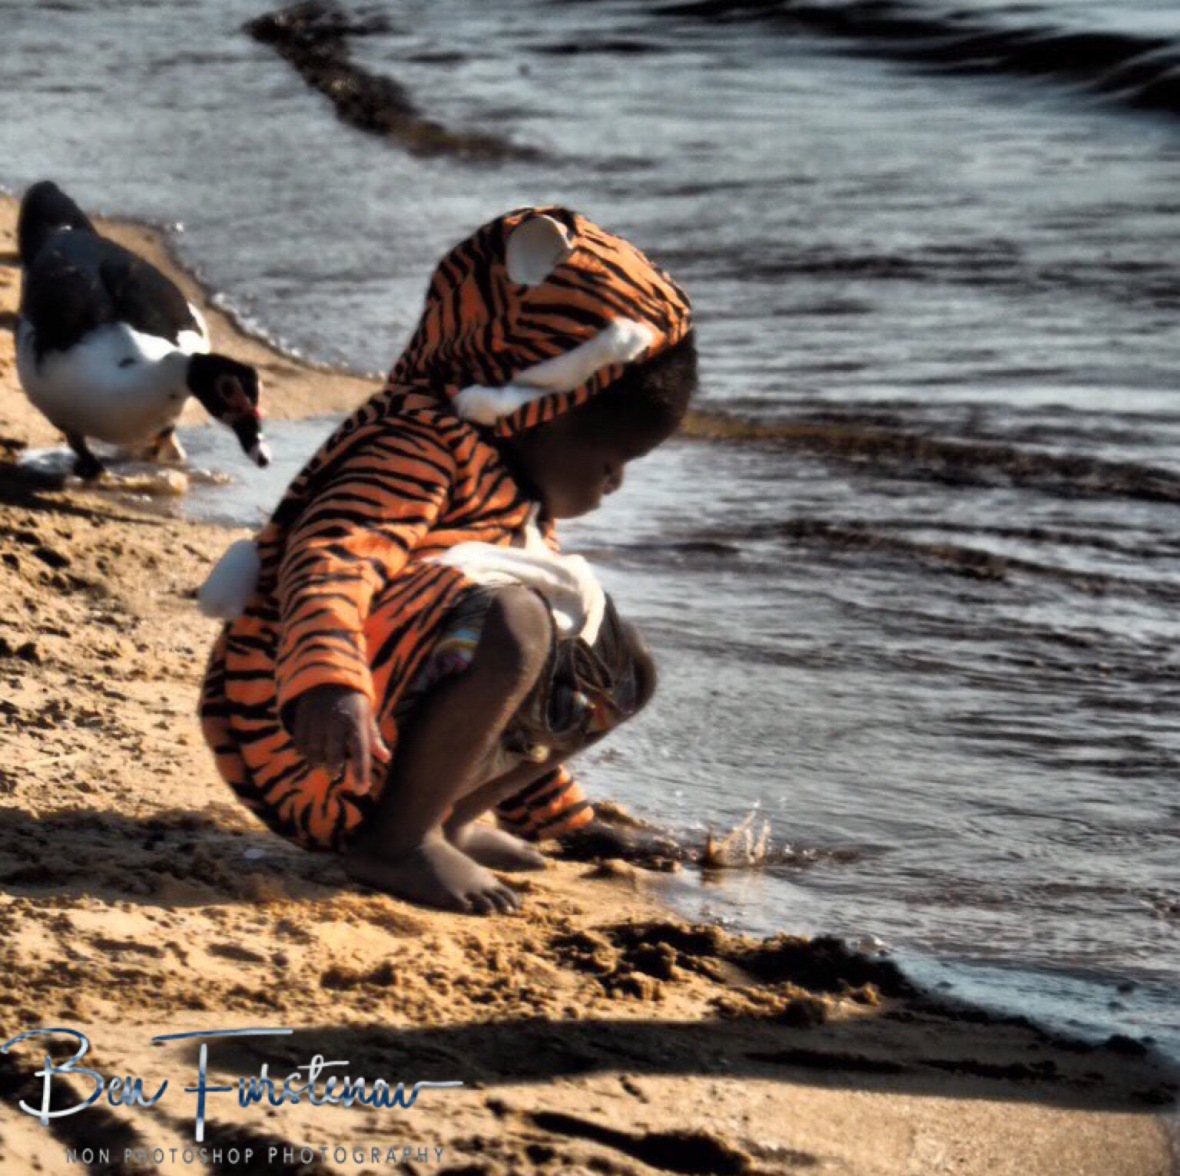 Tigers and ducks in Chembe, Cape Maclear, Lake Malawi, Malawi